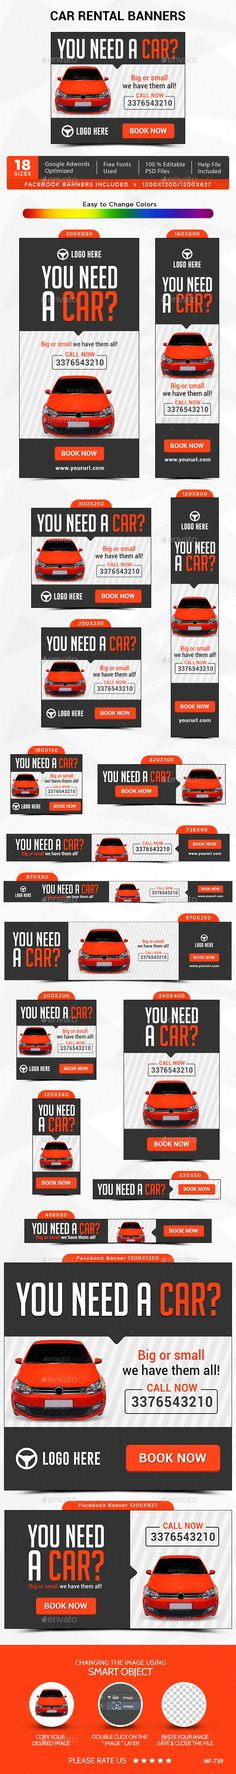 Car Rental Banners Cars, Template and Web banners - car ad template